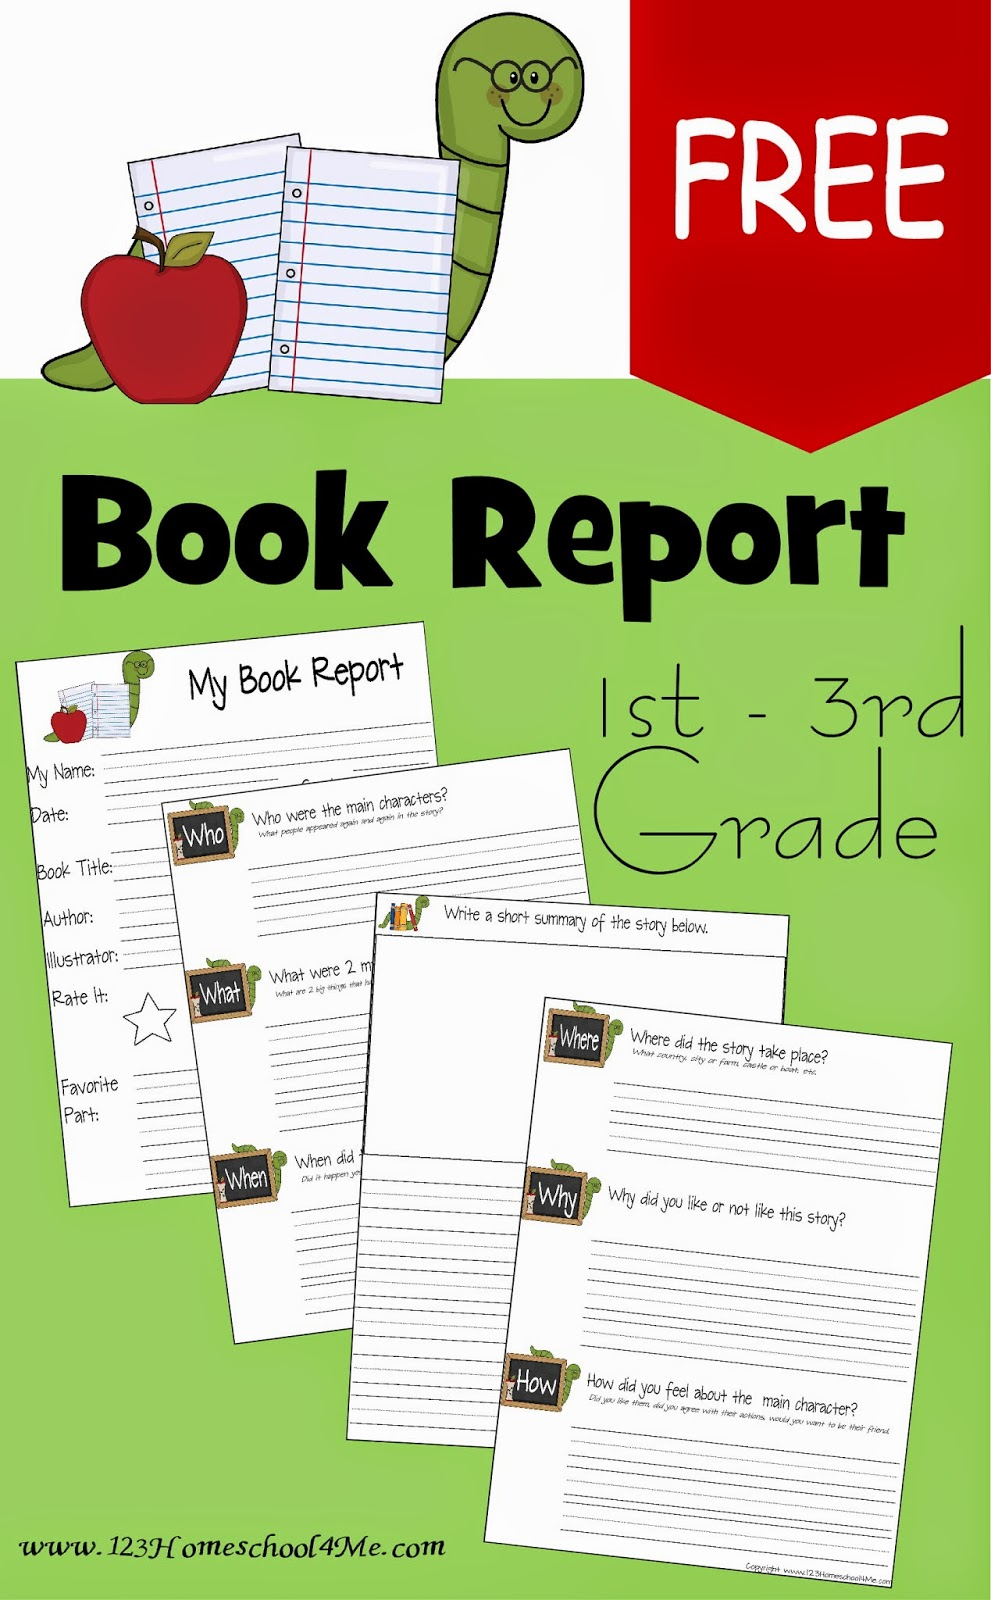 FREE Book Report Template in 2020   3rd grade books, 2nd ...